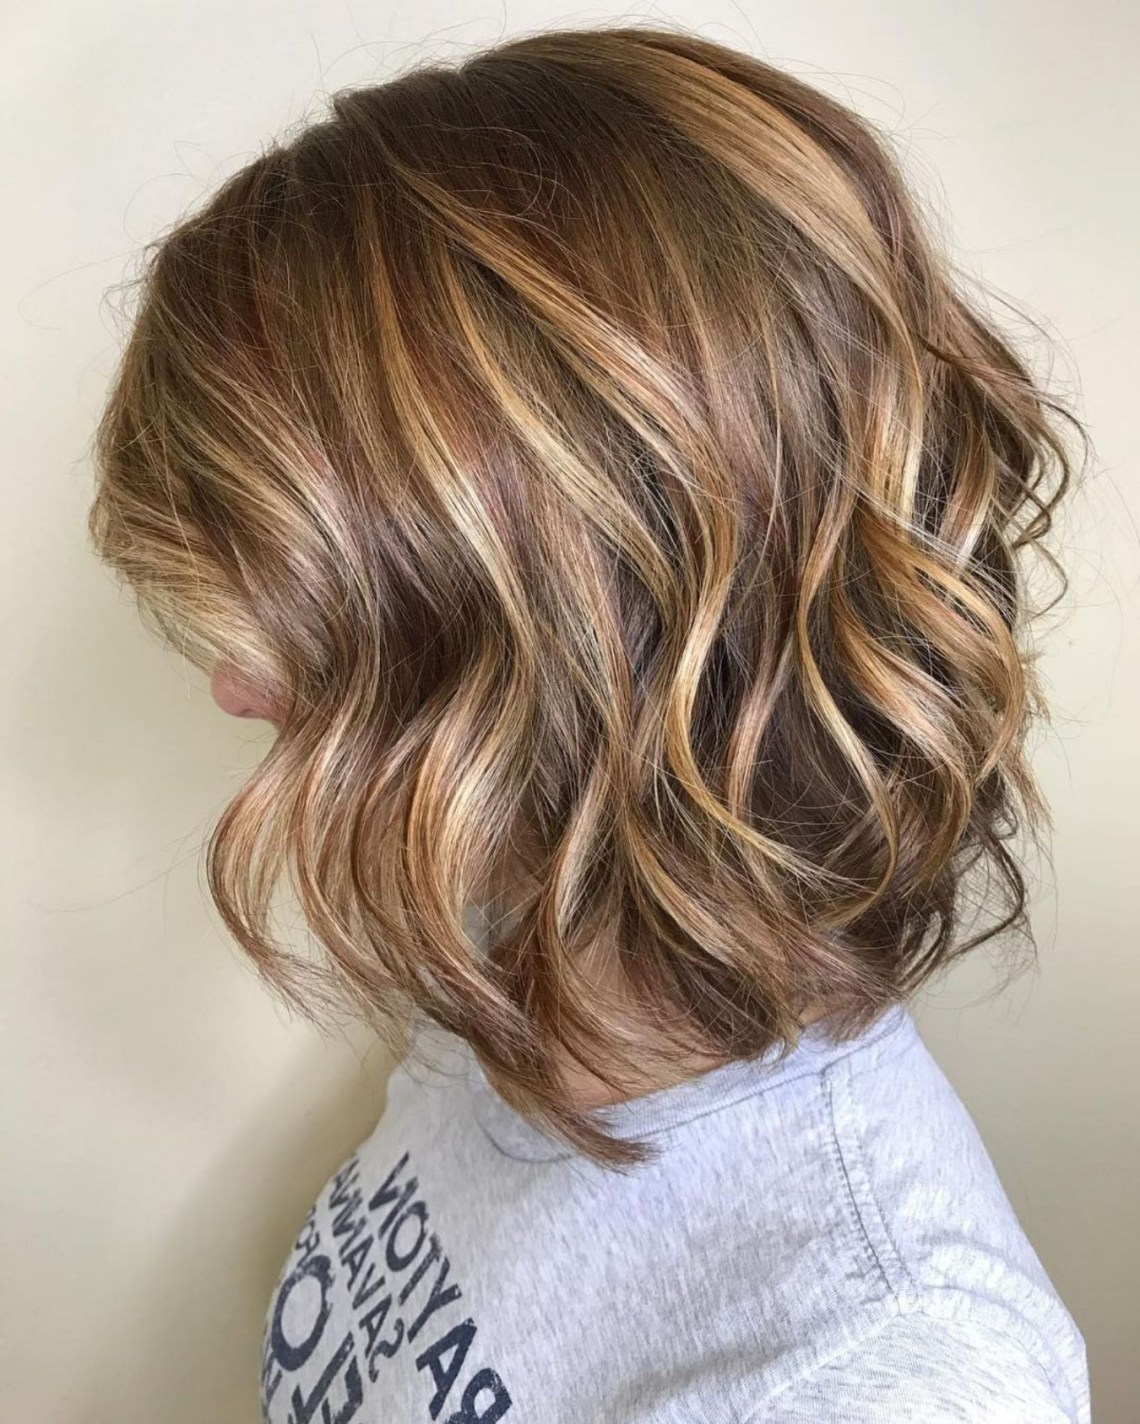 50 Ideas For Light Brown Hair With Highlights And Lowlights 30+ Adorable Medium Length Hairstyles With Lowlights